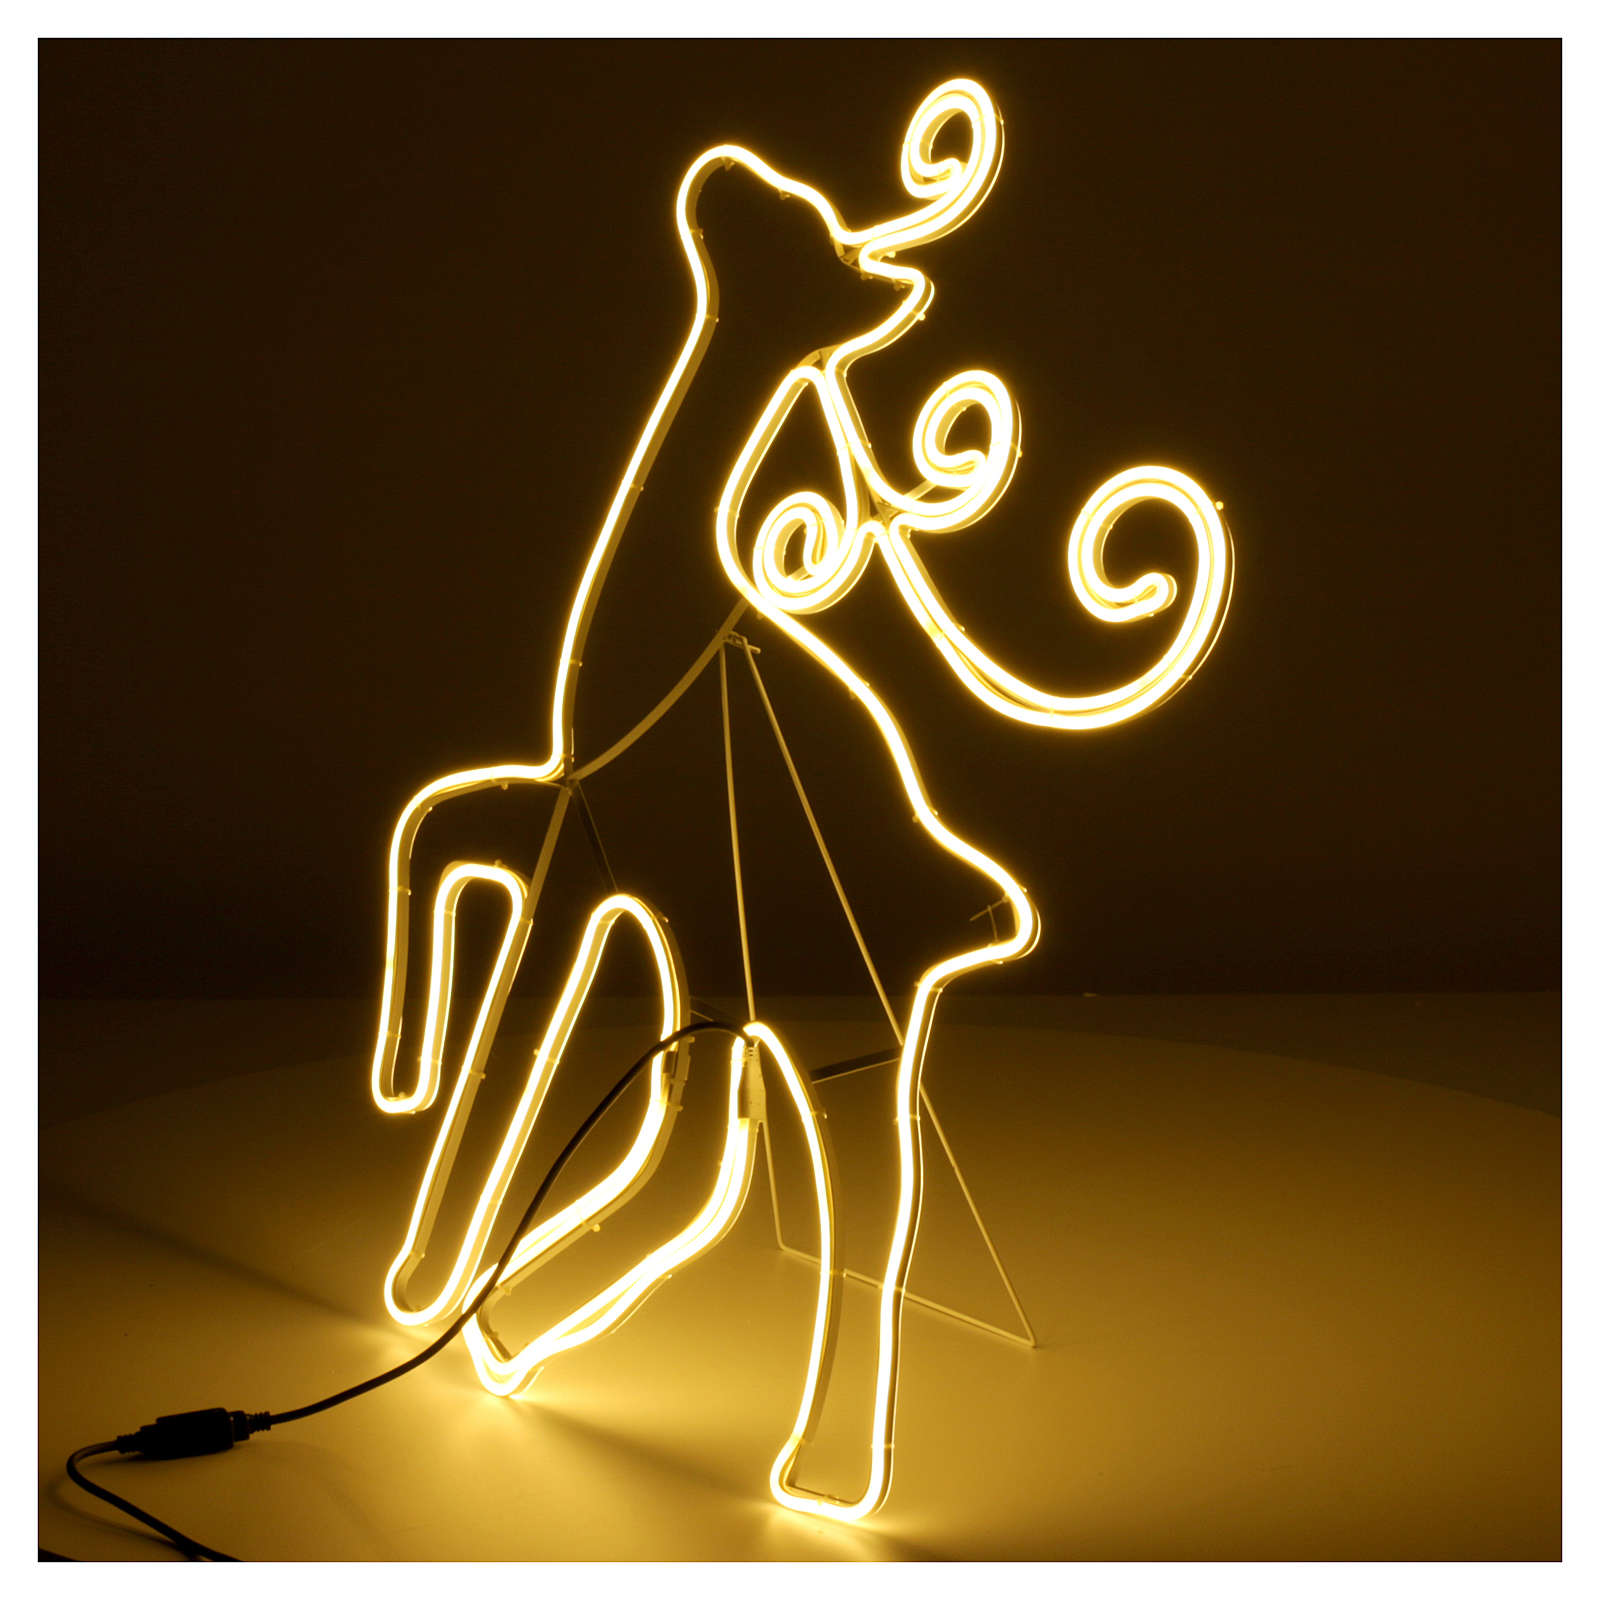 Reindeer light 180 leds warm white internal and external use 3